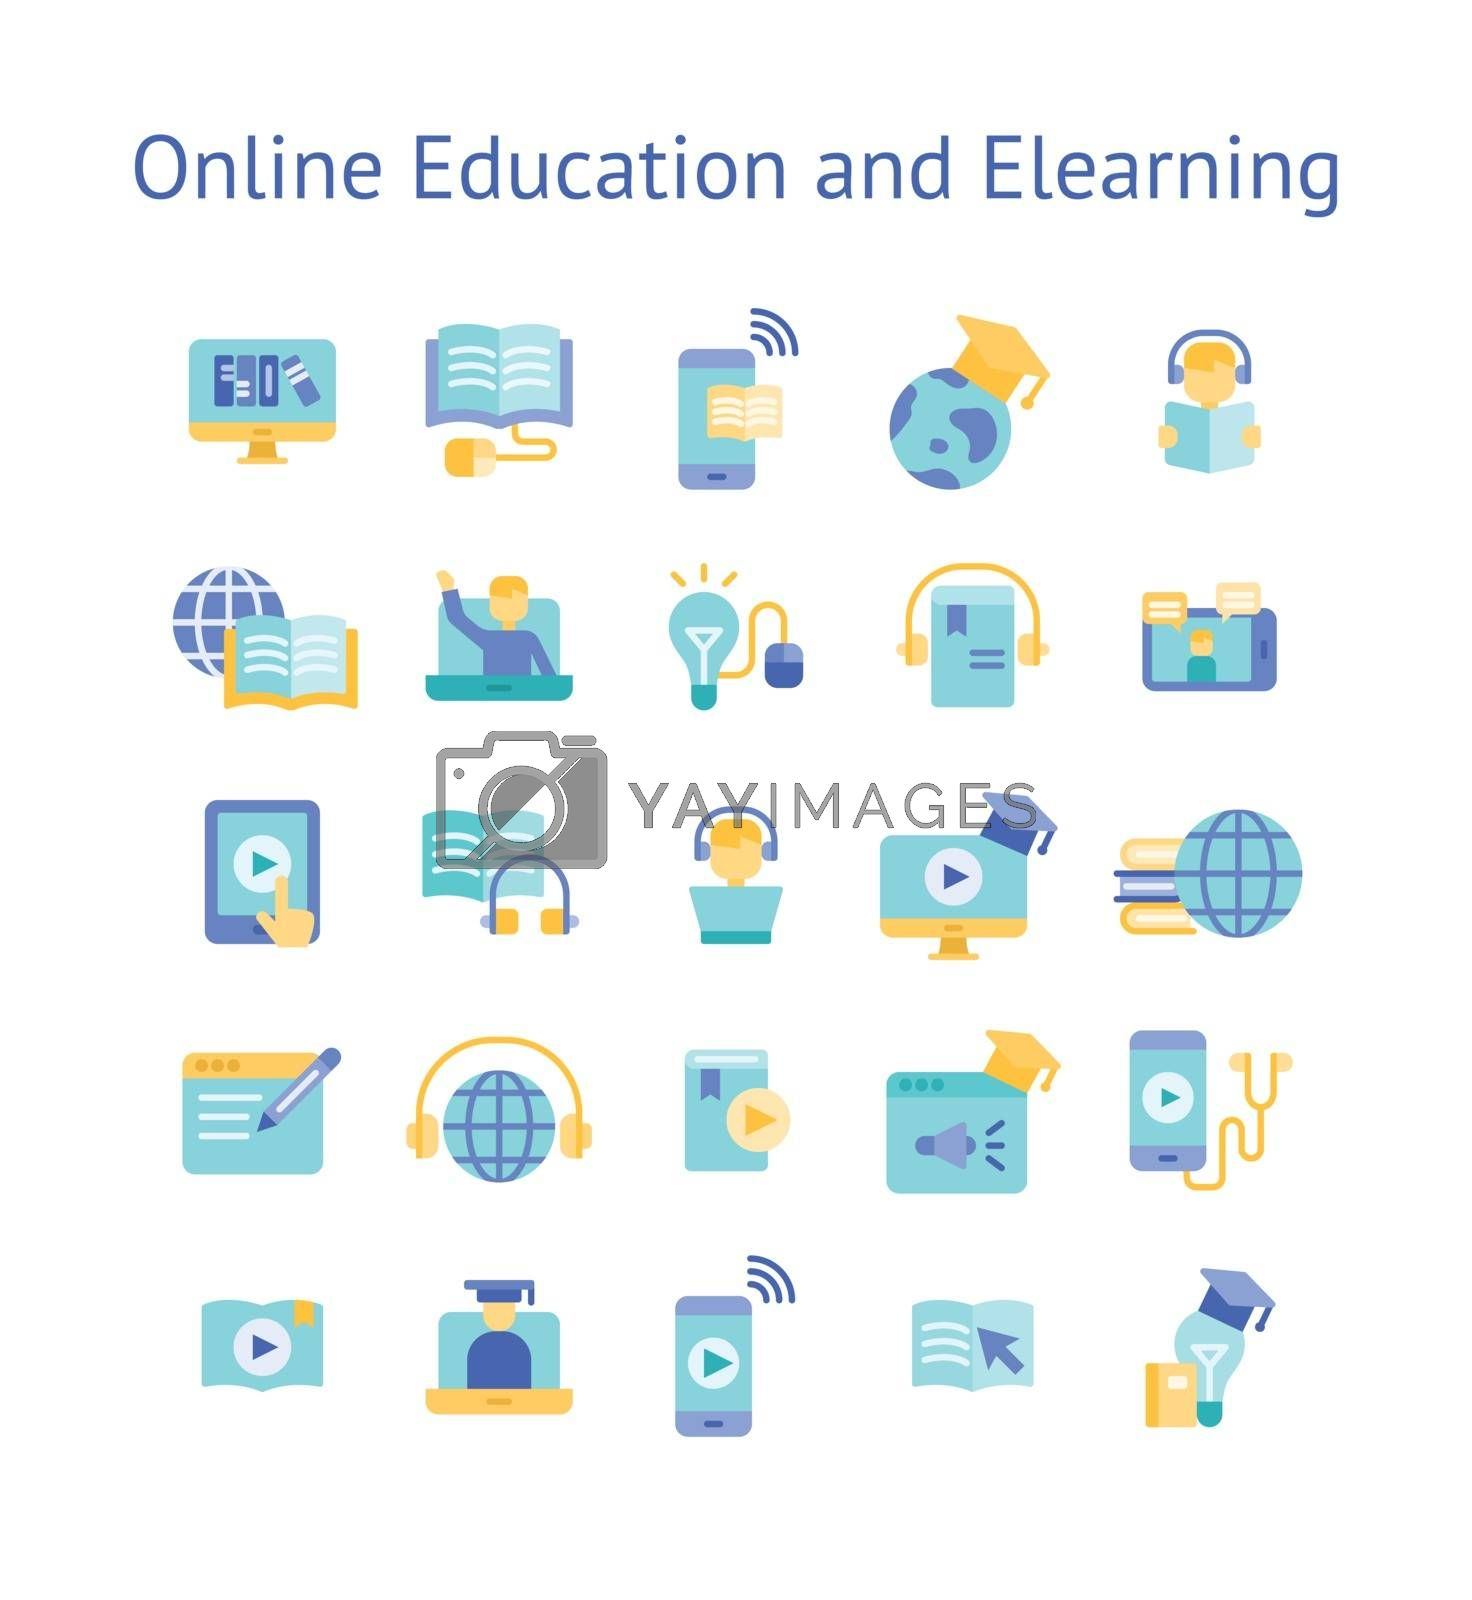 Online Education and Elearning flat icon set.